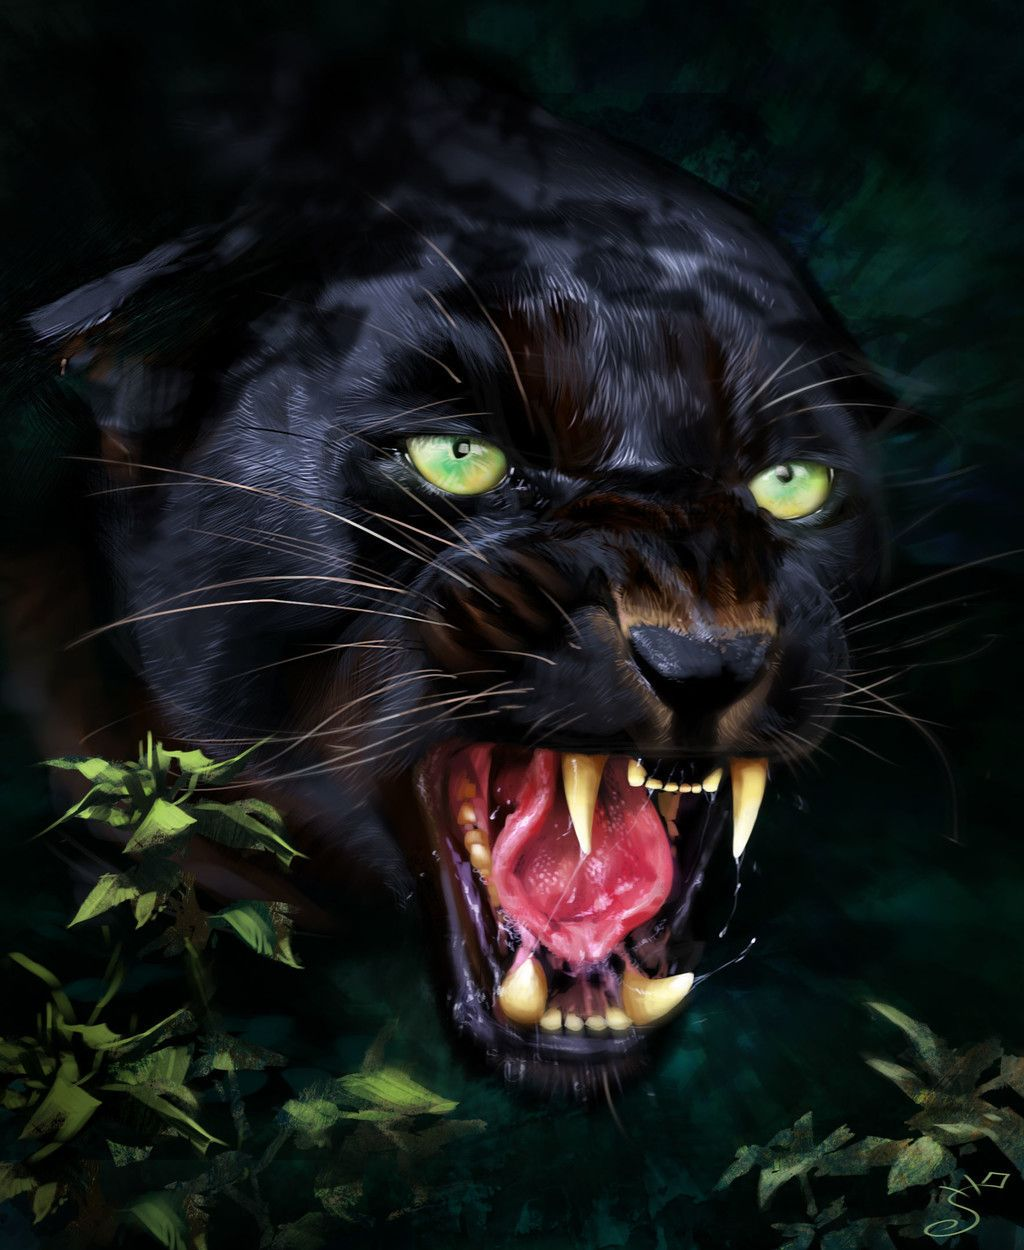 Jaguar Predator Black Animal Muzzle Art Wallpaper Jungle Animals Pictures Black Panther Cat Animal Wallpaper